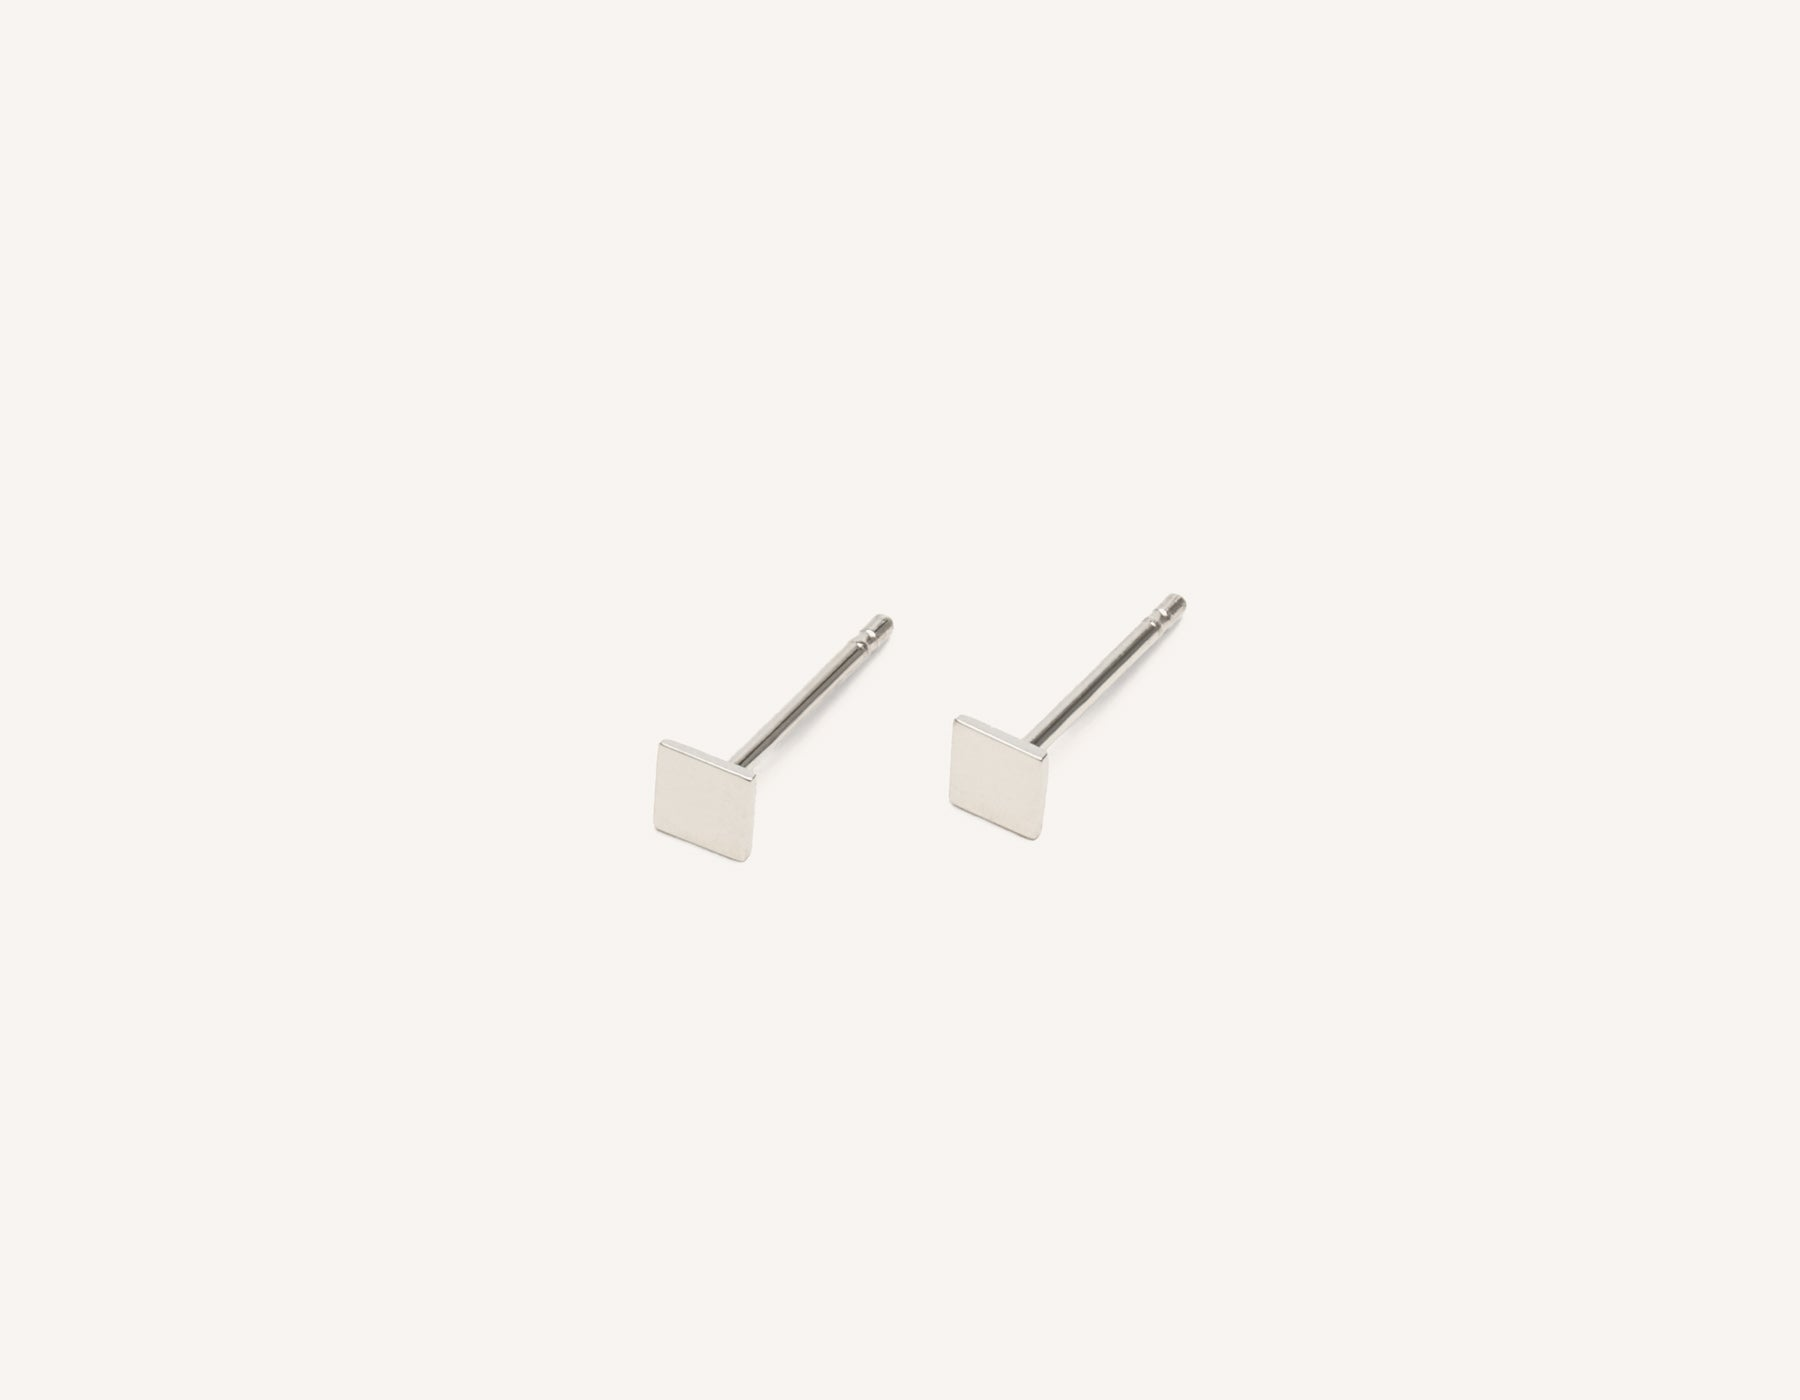 Simple classic Square Stud earrings 14k solid gold Vrai & Oro minimalist jewelry, 14K White Gold